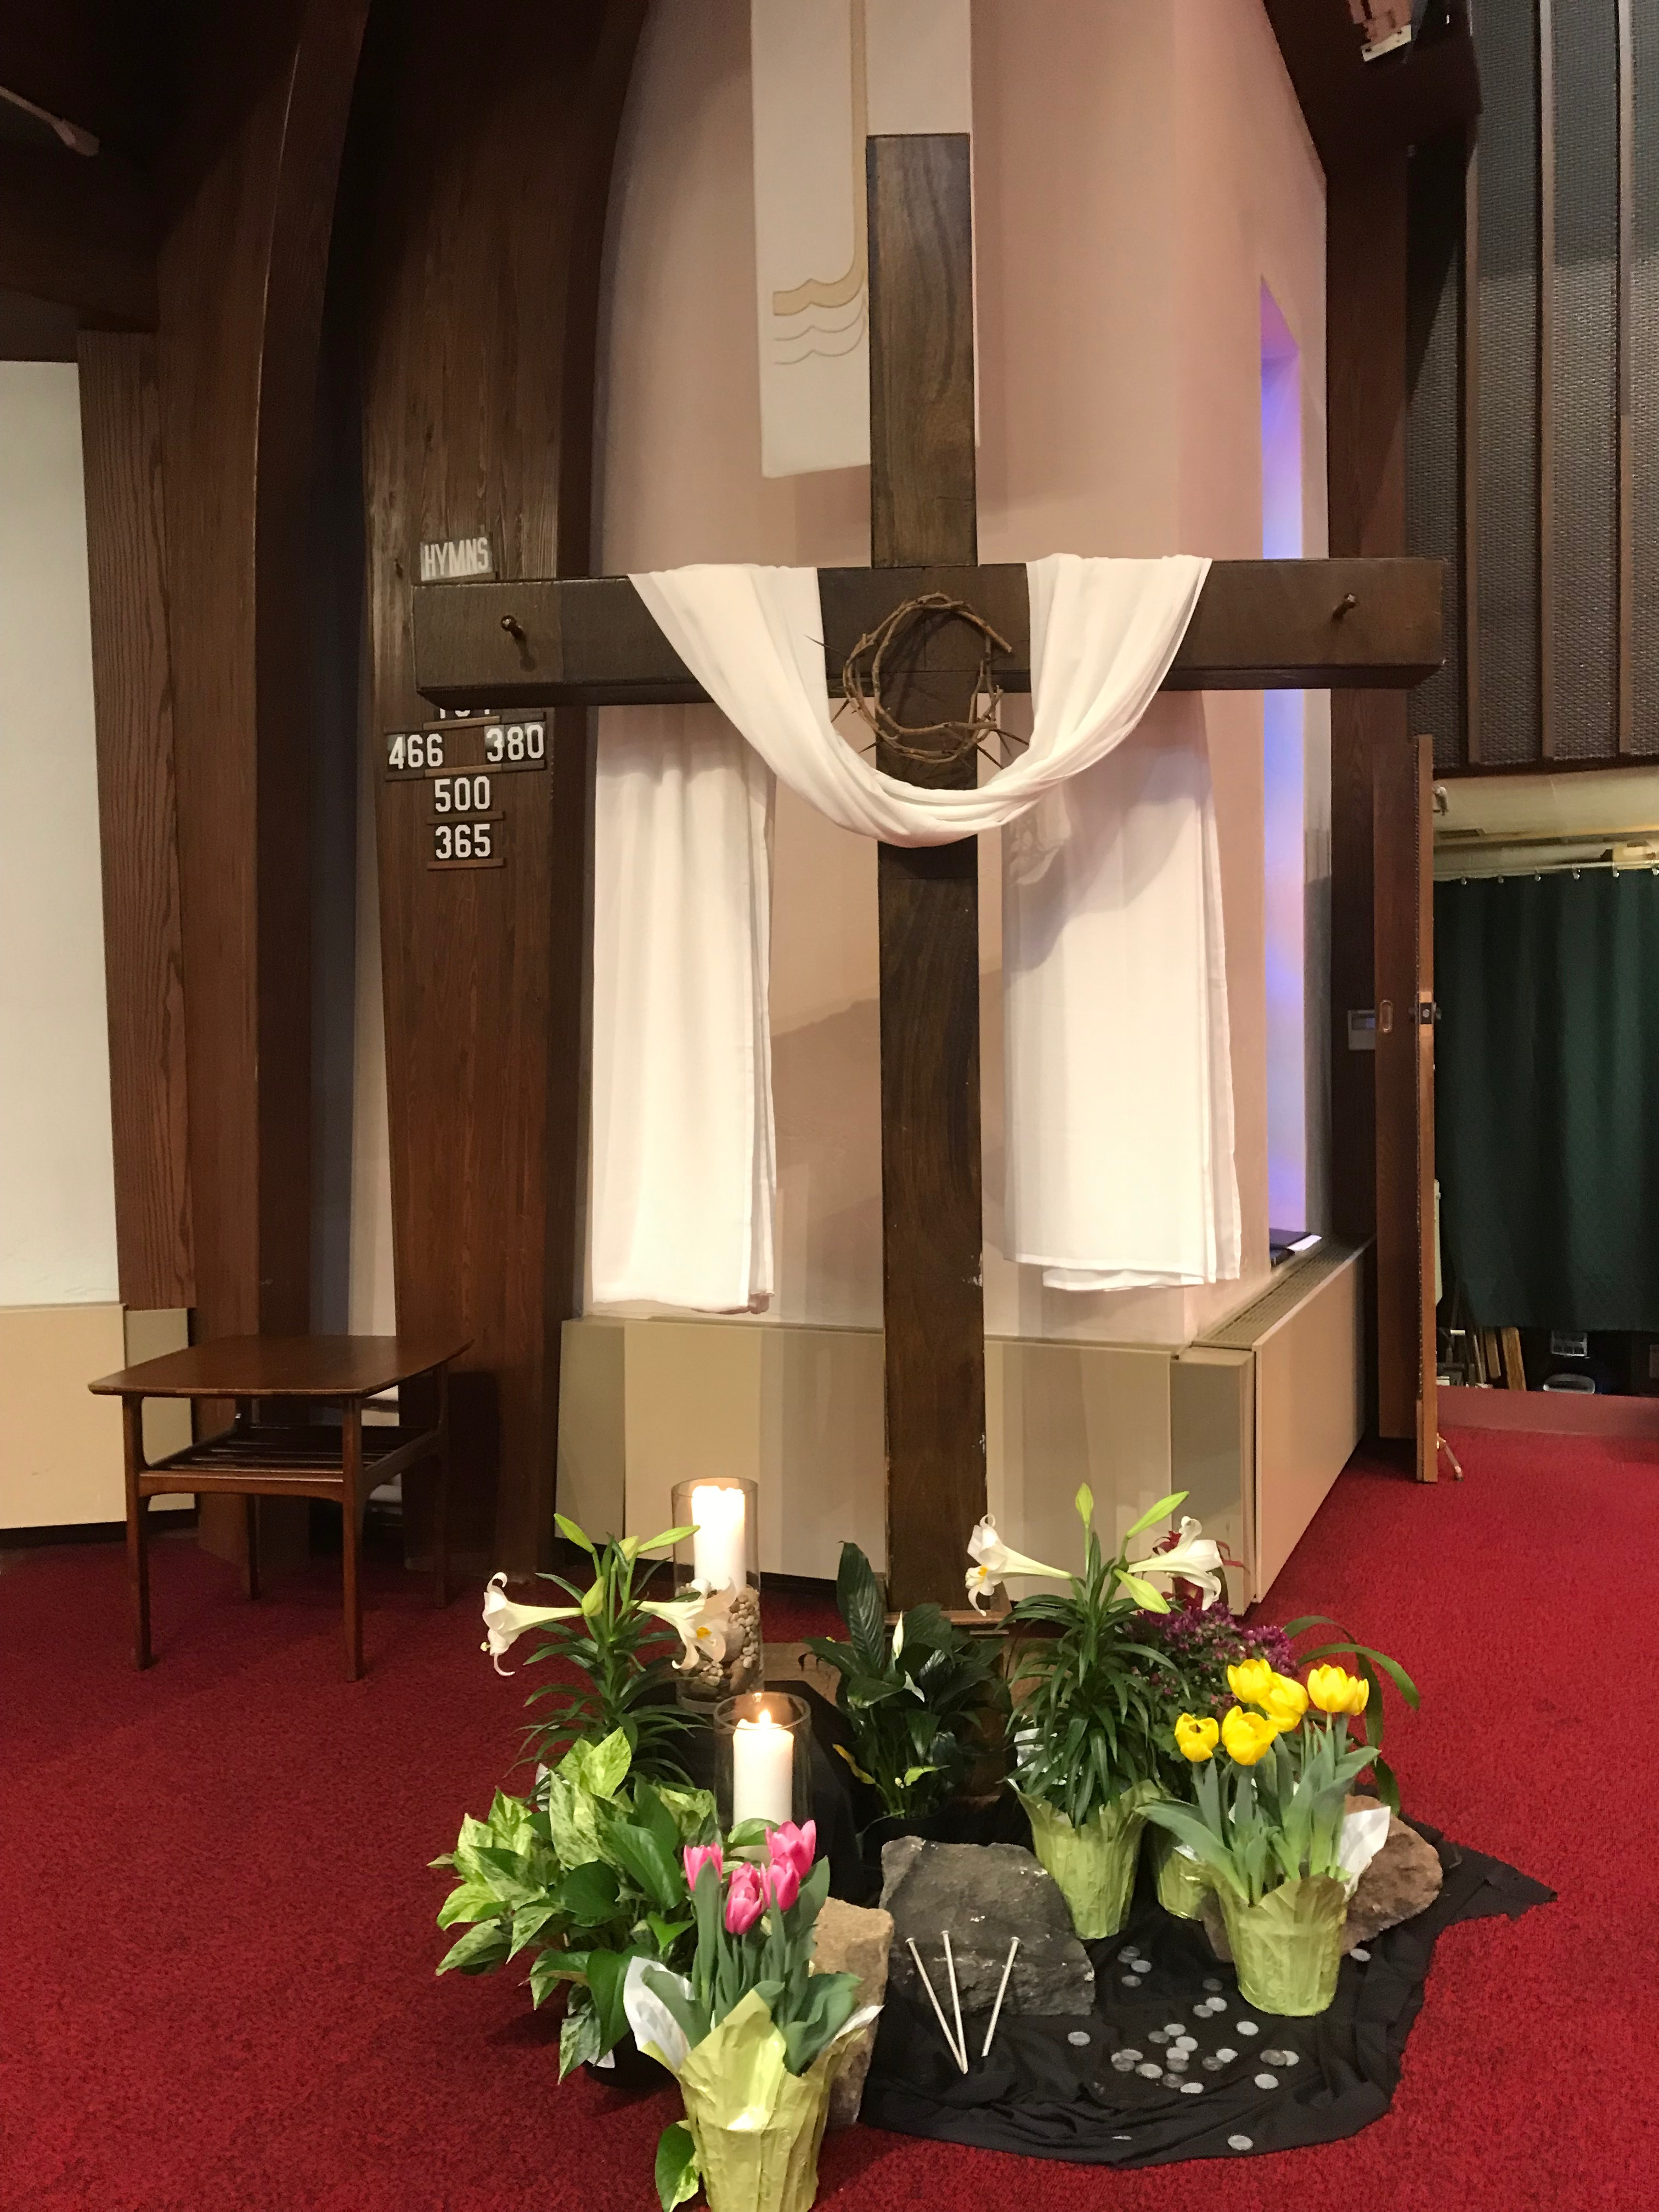 images/stories/HeaderImages/Frame1/Easter Cross.jpeg